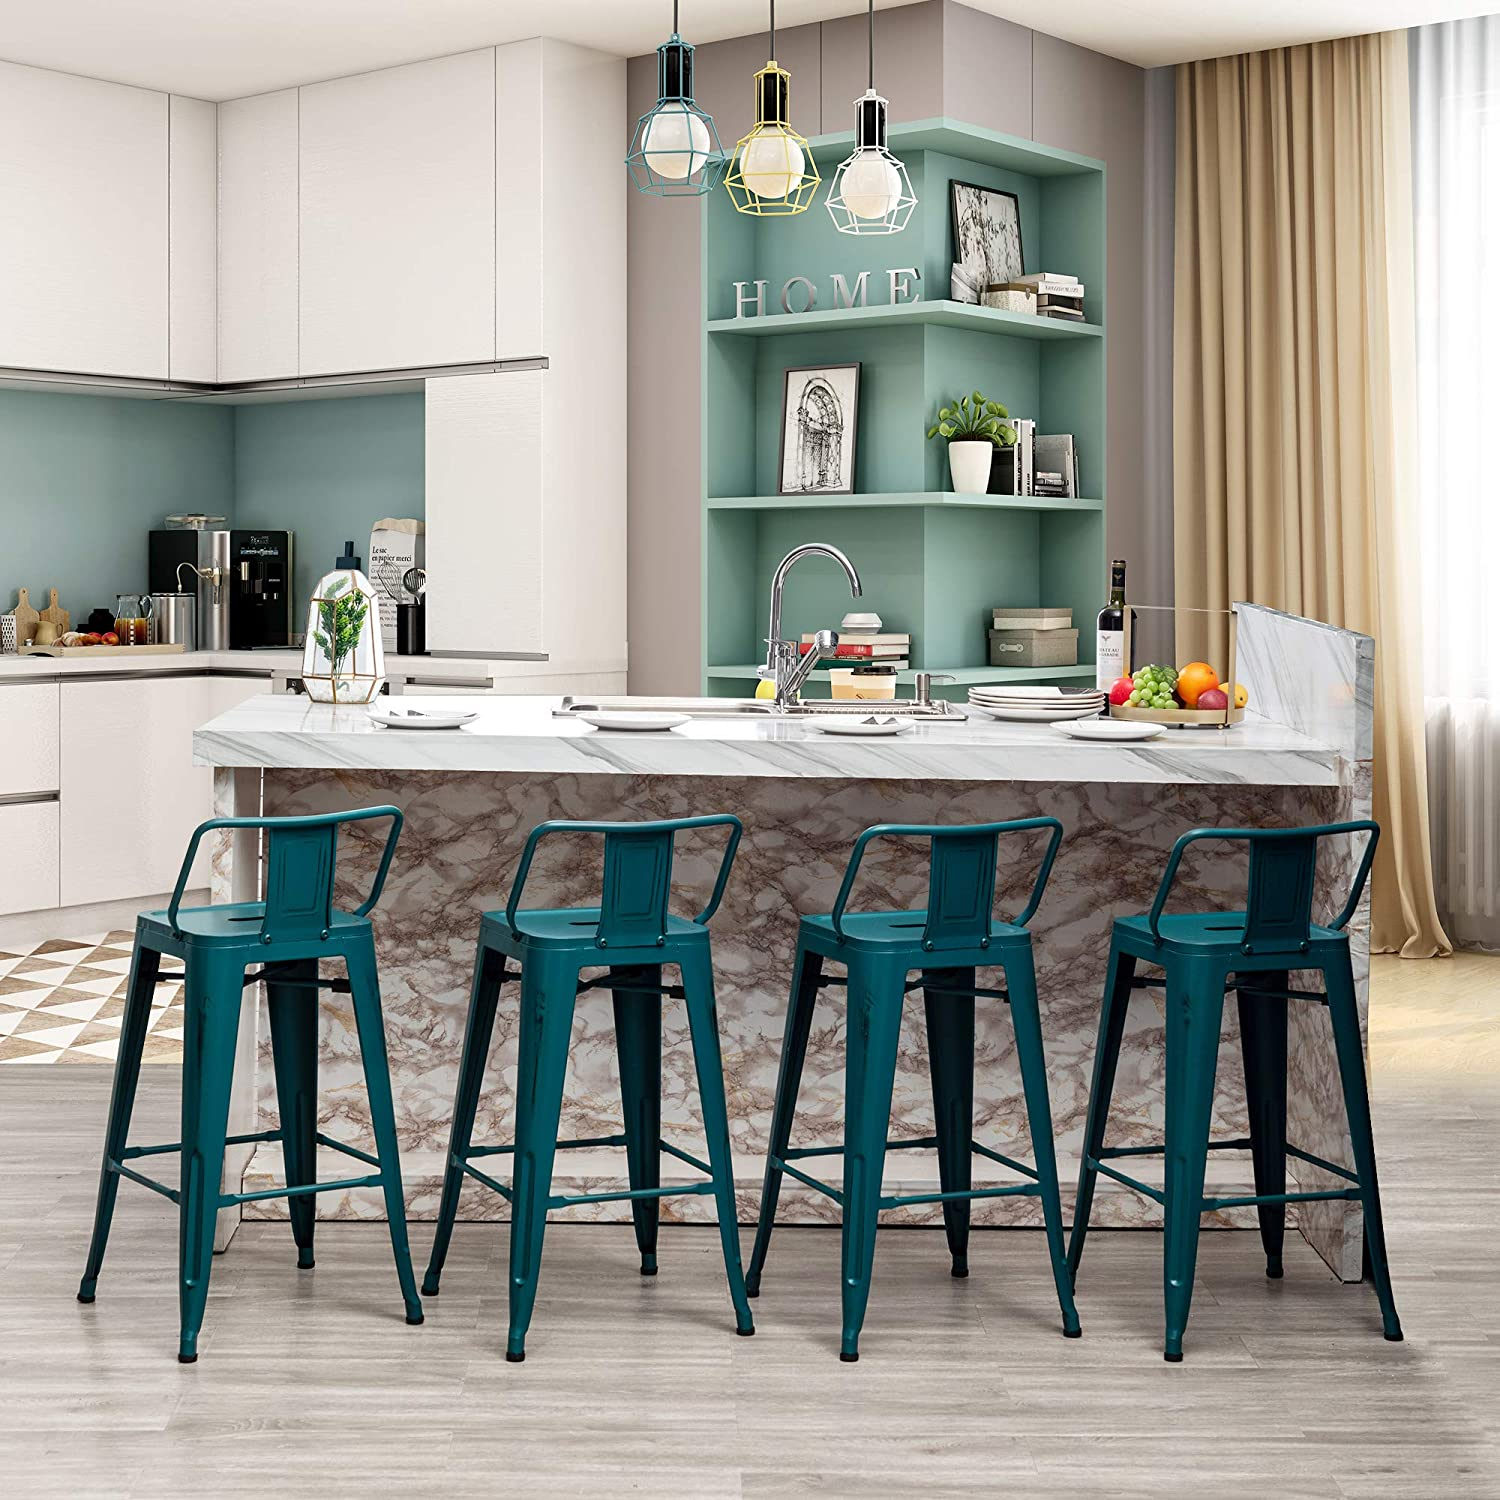 Amazon.com: Metal Bar Stools Set Of 4 With Backs Counter Height Barstools Industrial Style (26 Inch, Teal): Kitchen & Dining